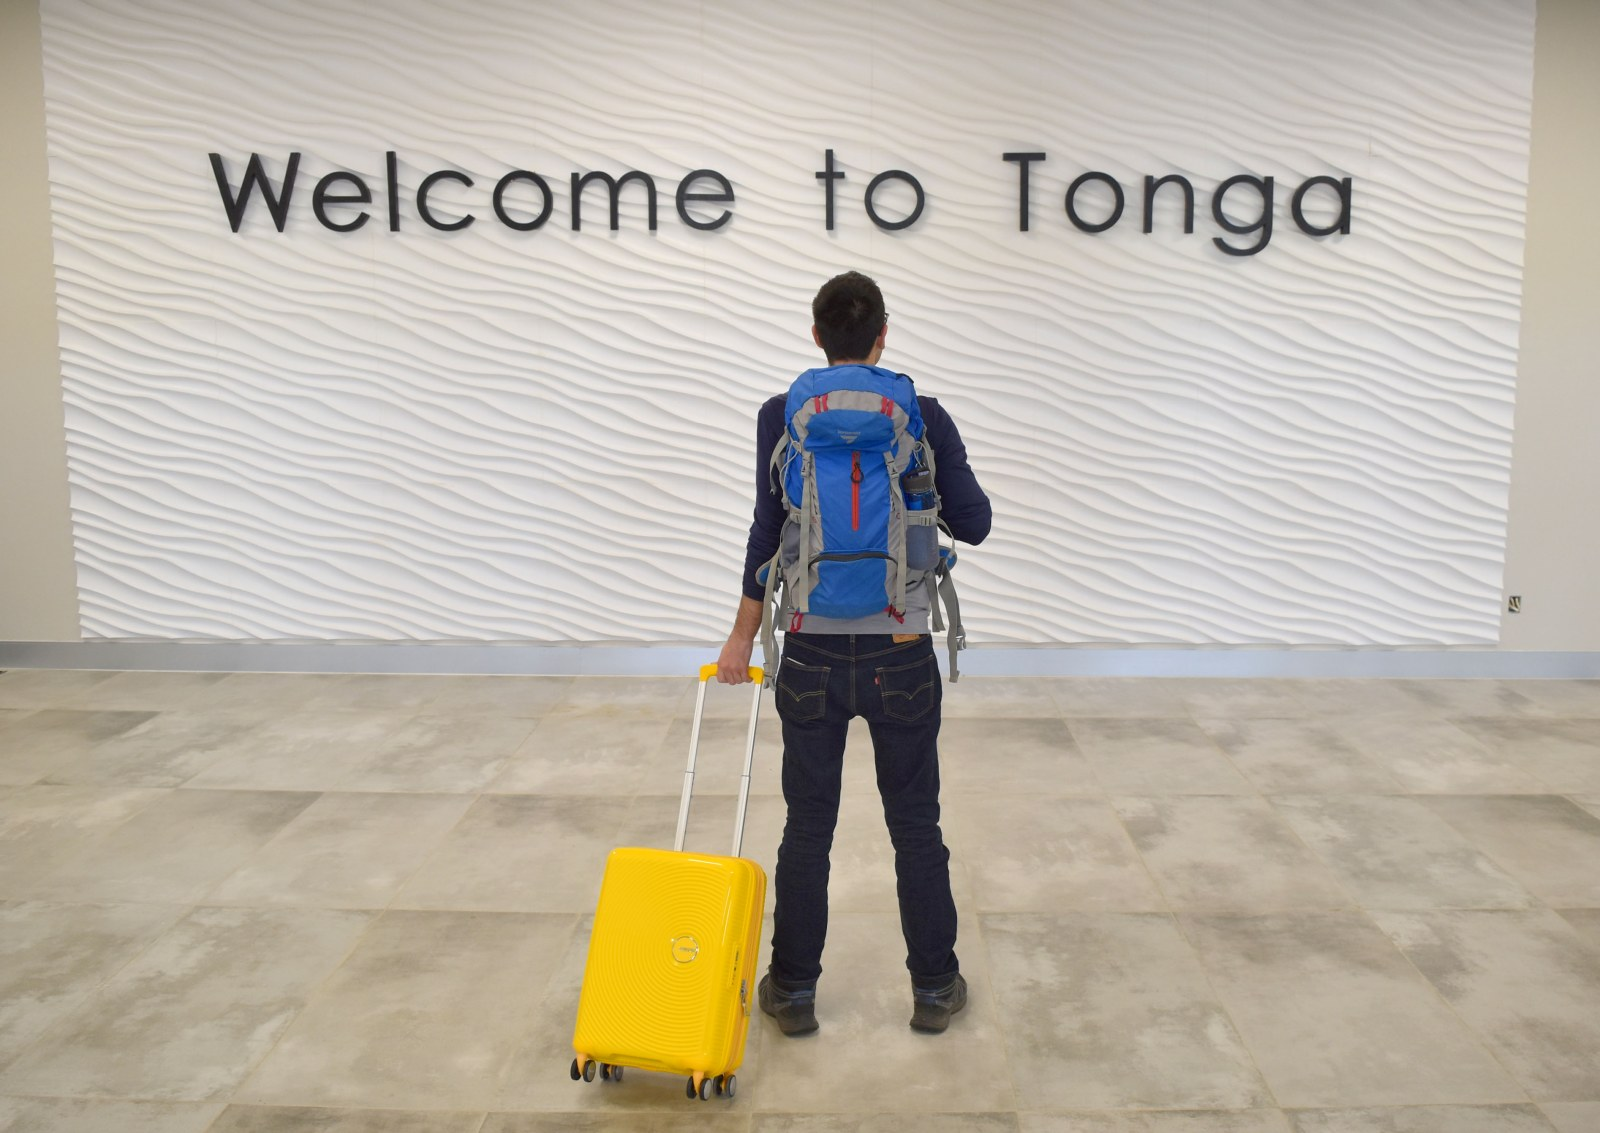 Arrival Advice: Biosecurity and Customs in Tonga